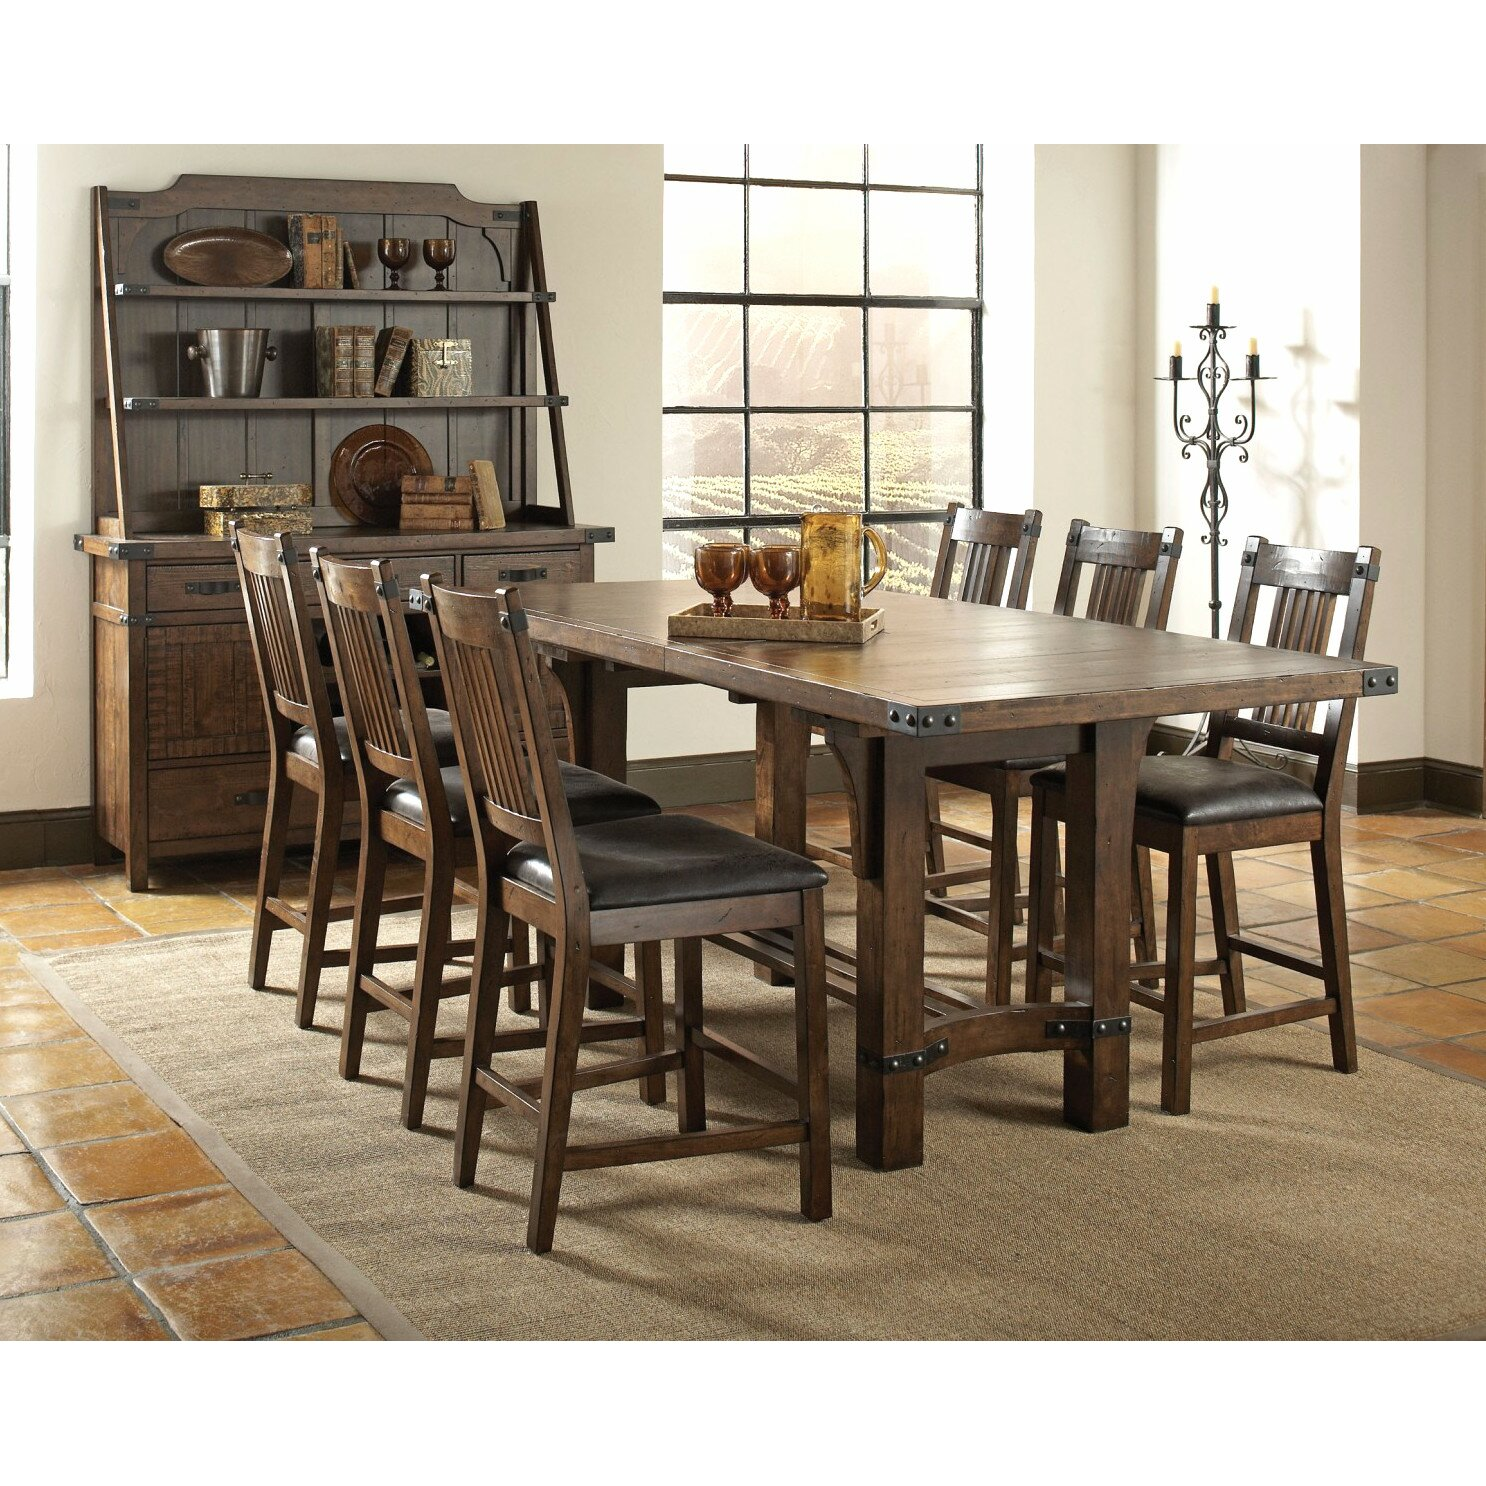 Infini furnishings 7 piece counter height dining set for Counter height dining set